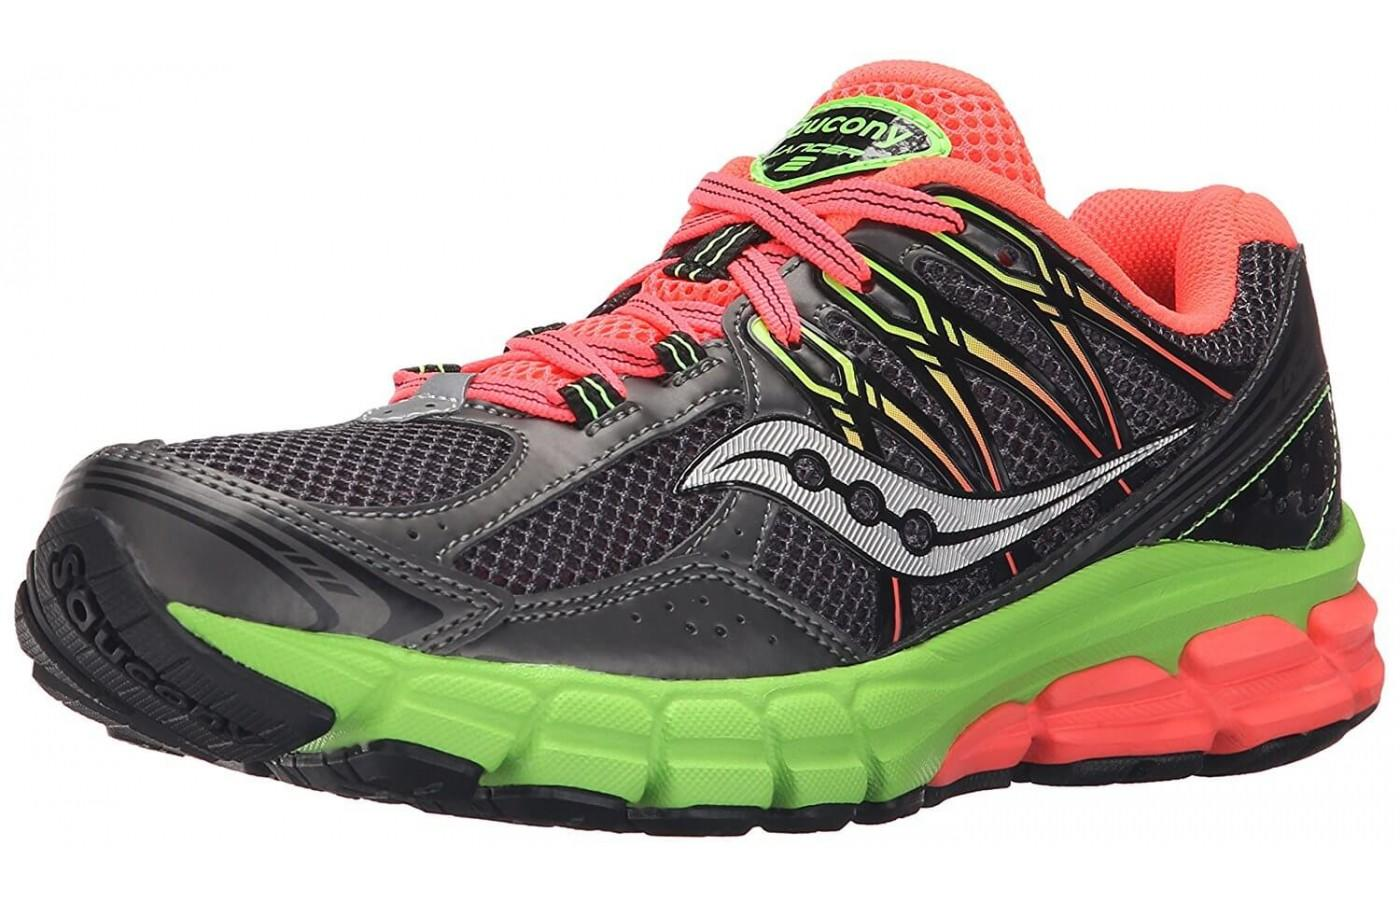 Saucony Lancer 2 black color with neon accents